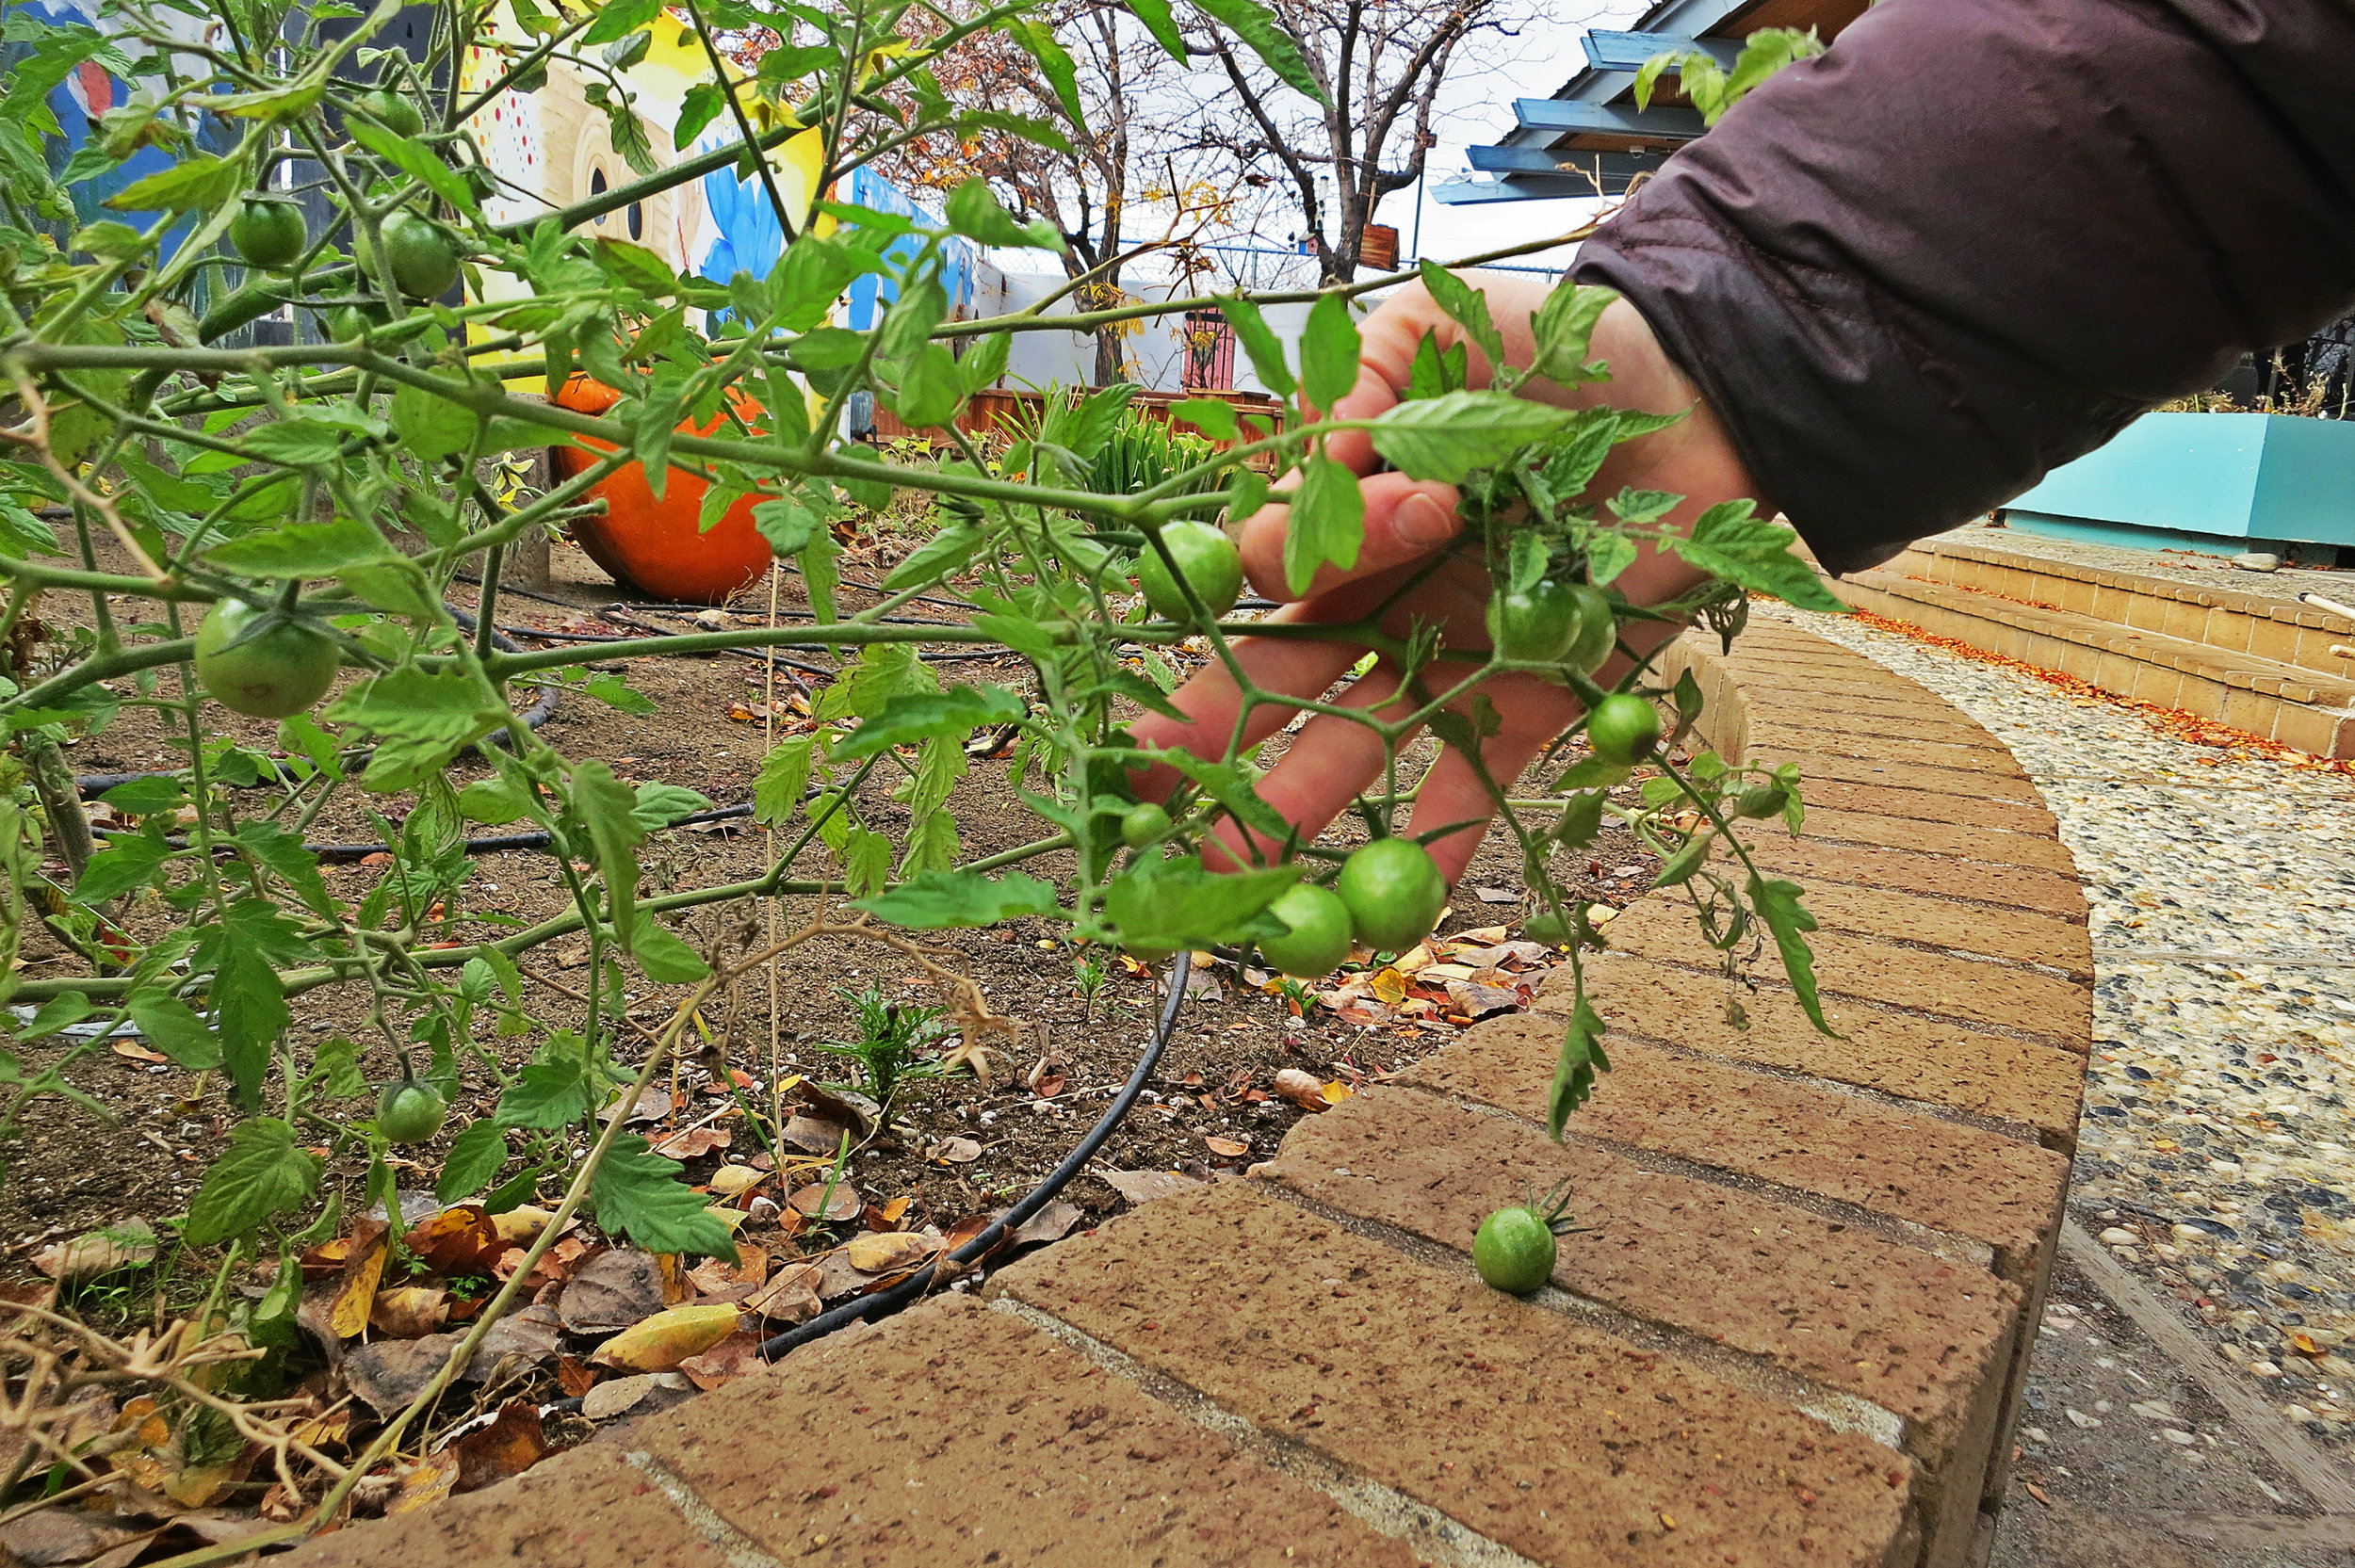 The High Desert Montessori School is one of many healthy food and community programs Stetson helps with.